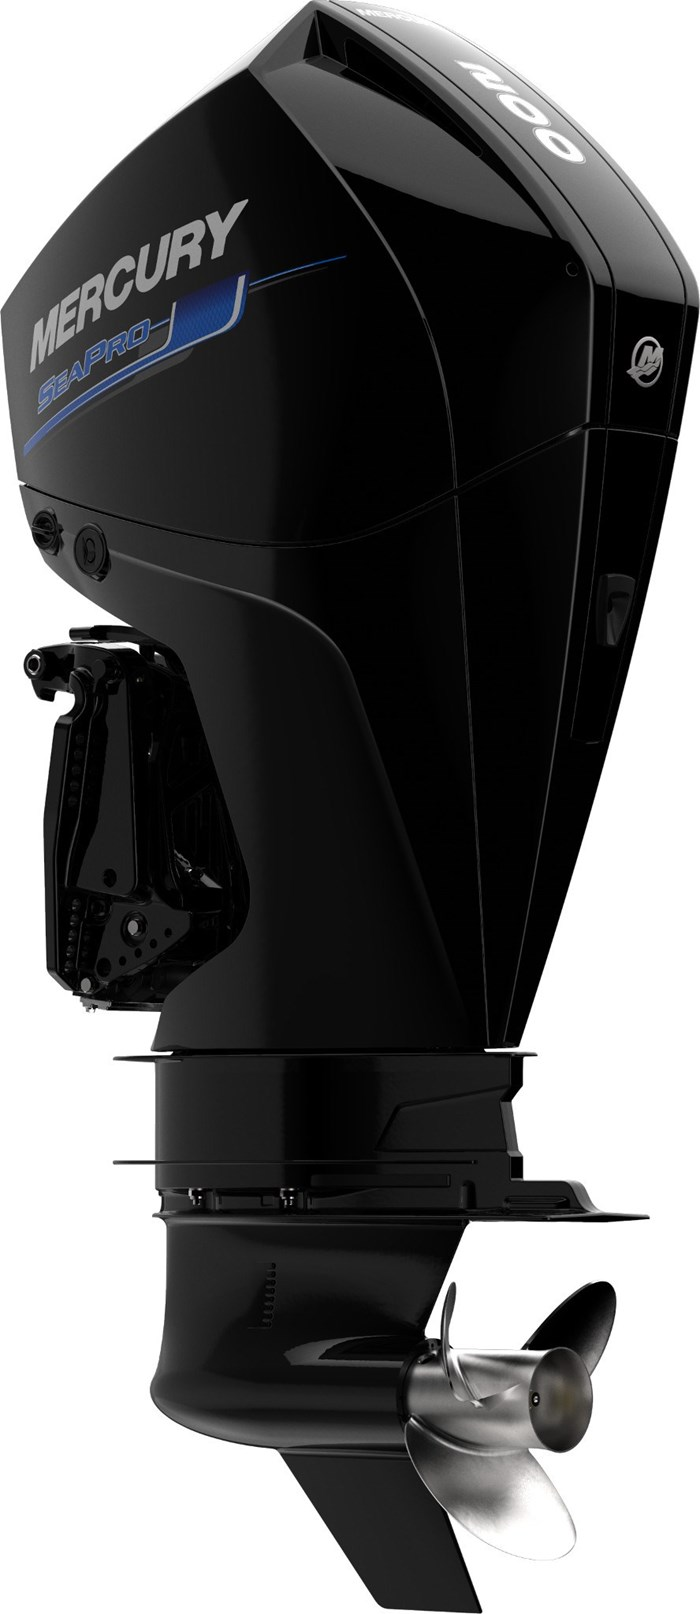 2021 Mercury 200CXL V-6 4-Stroke SeaPro DTS Commercial Outboard Photo 7 of 26